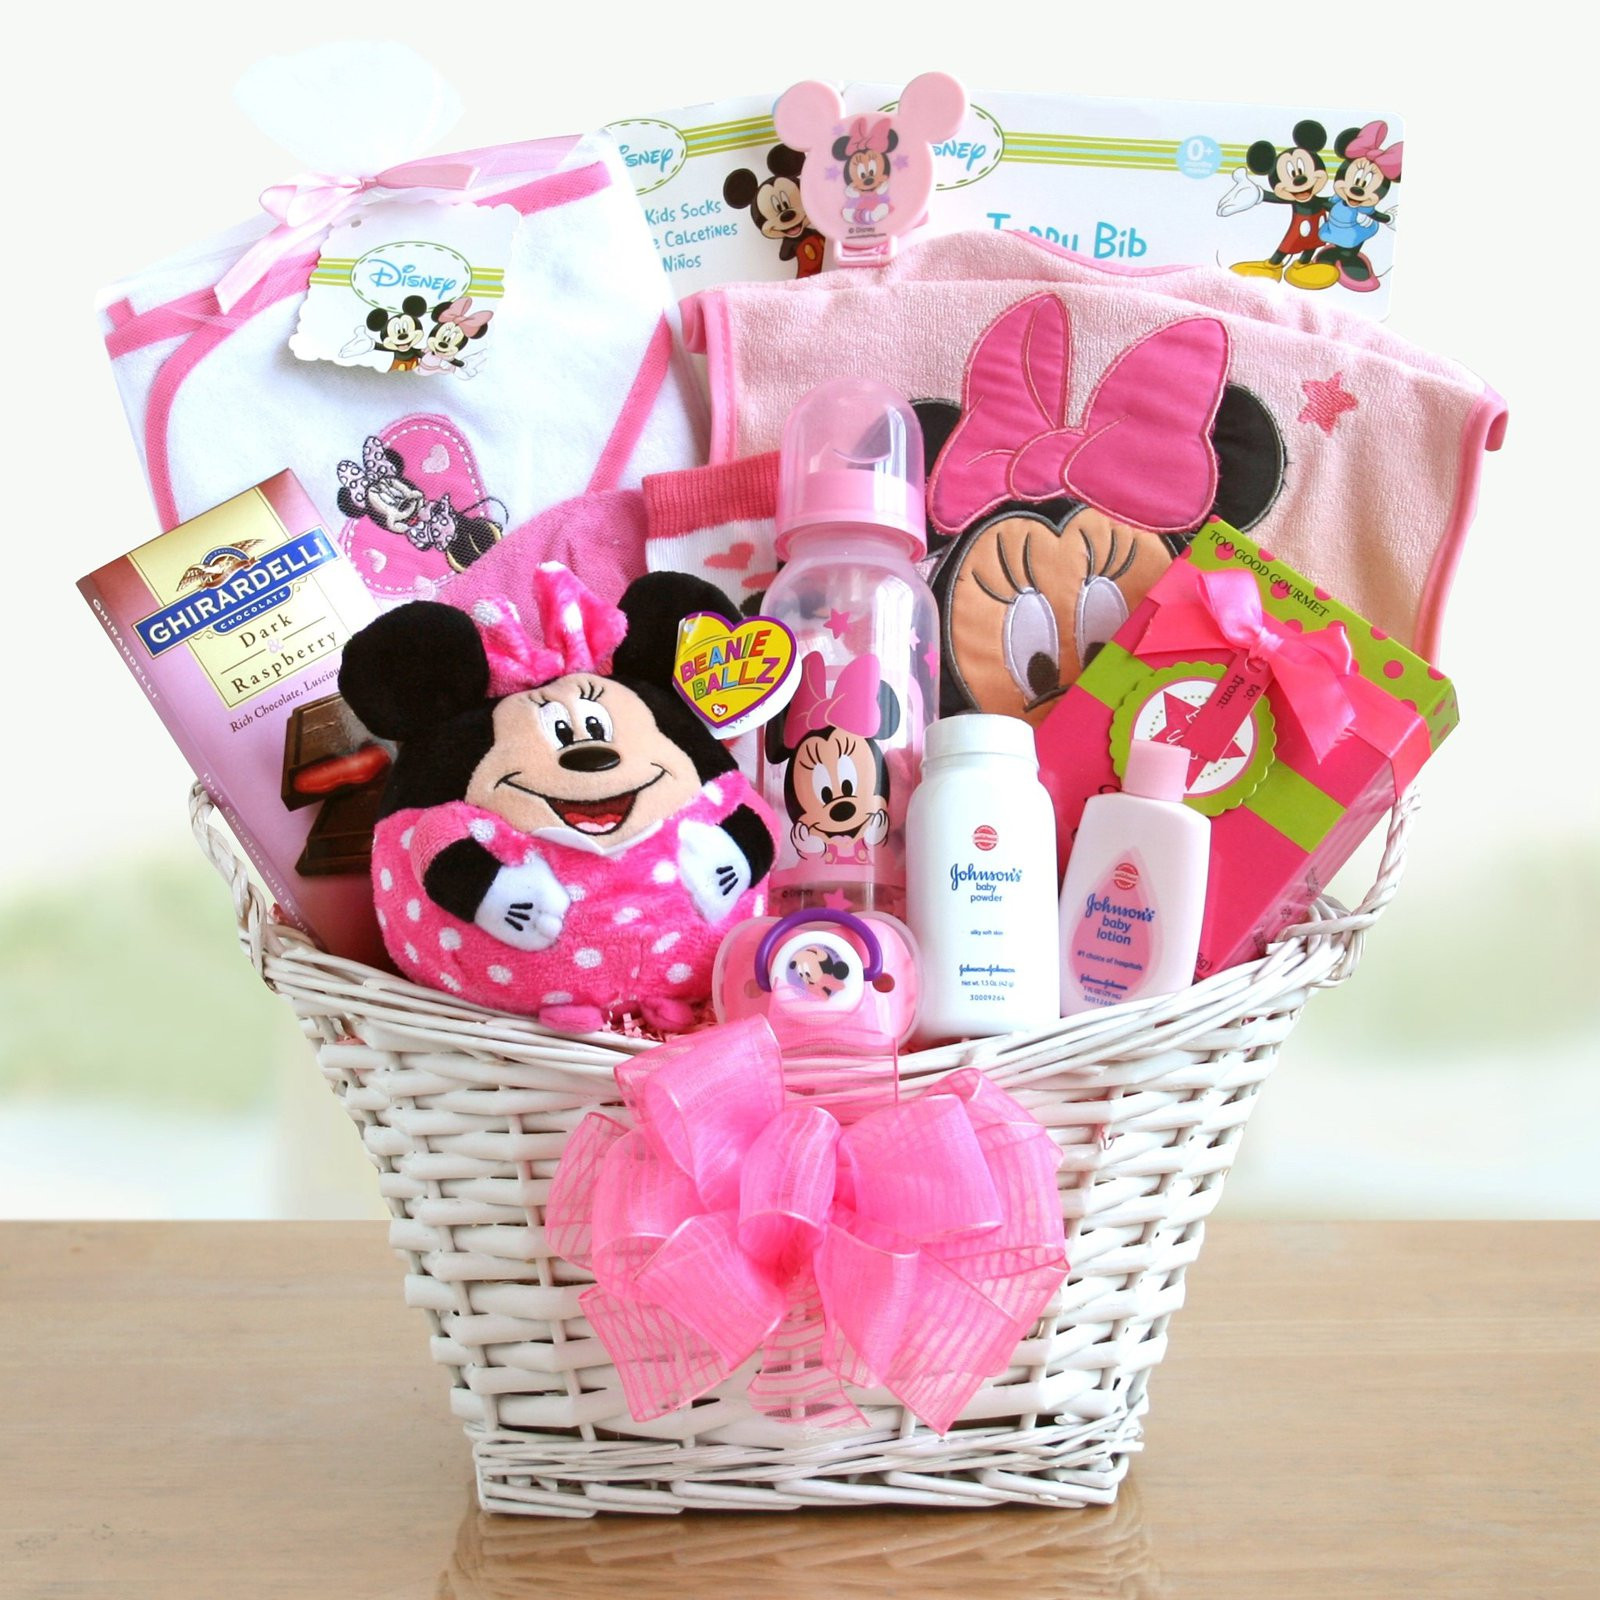 Gift Basket Ideas For Girls  Minnie Mouse Baby Girl Gift Basket Gift Baskets by